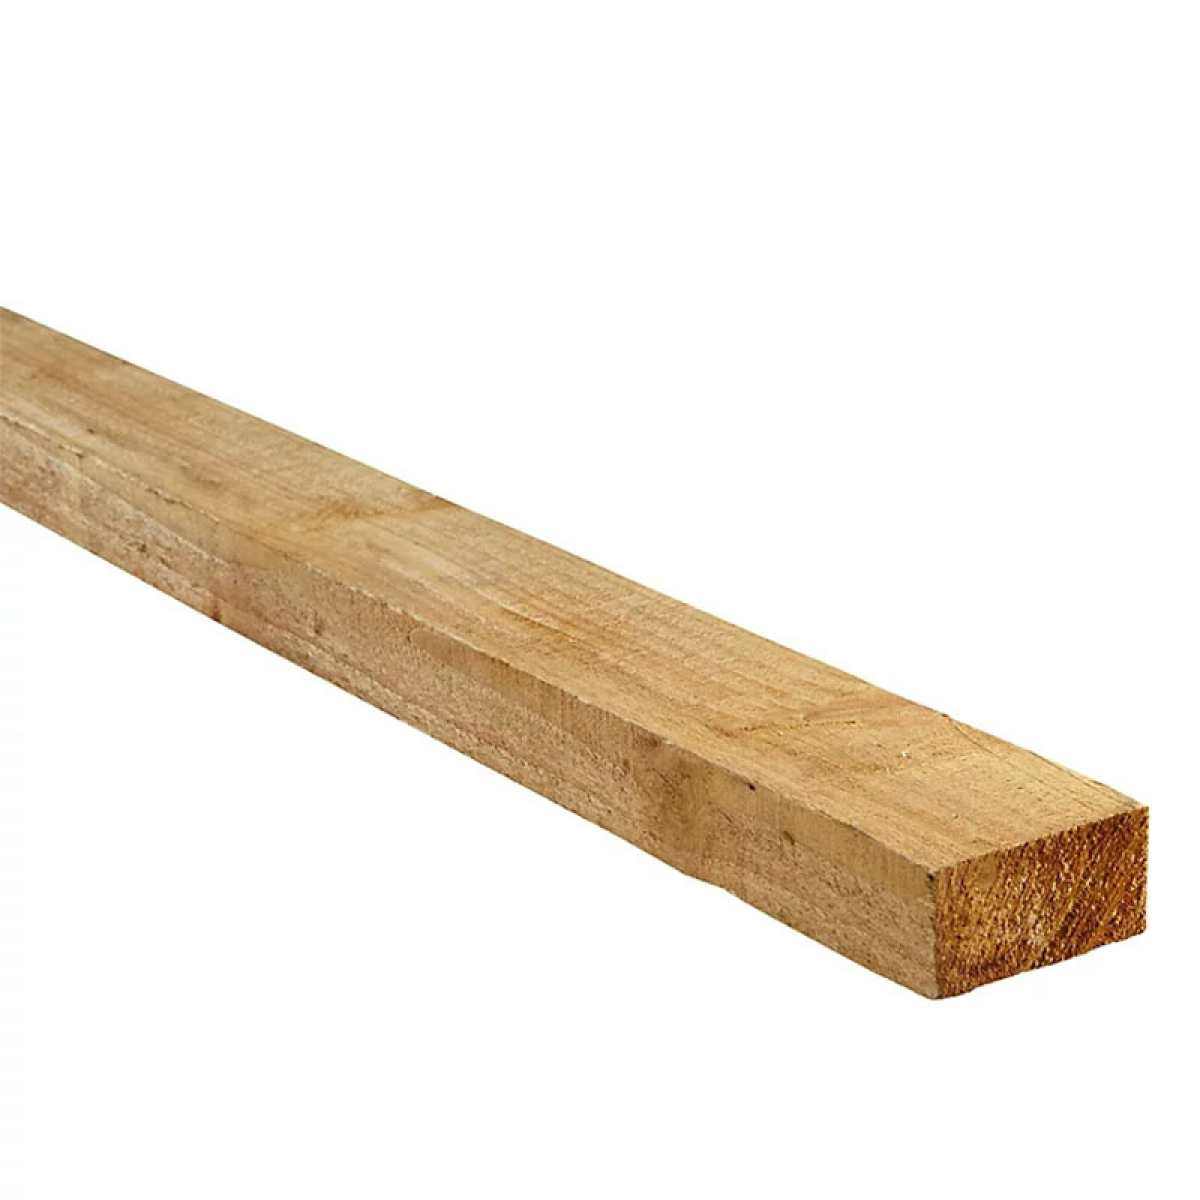 fencing rail websterstimber 38mmby88mm 800x800 1 Image by Websters Timber